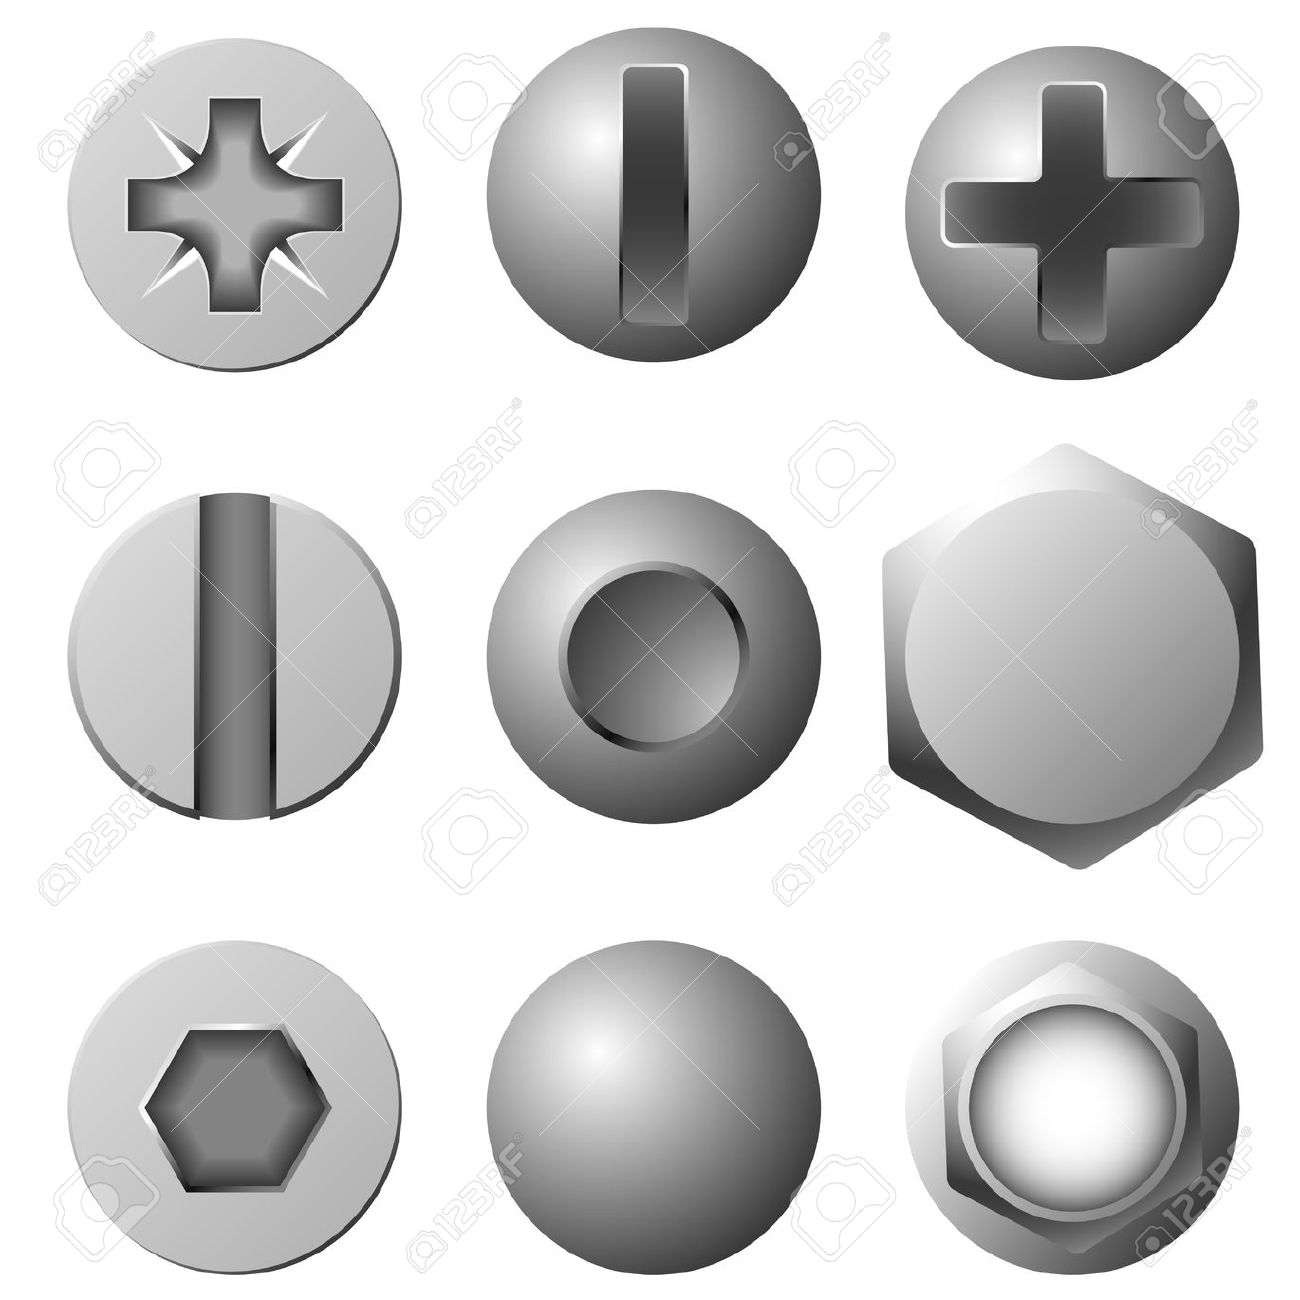 rivets clipart clipground